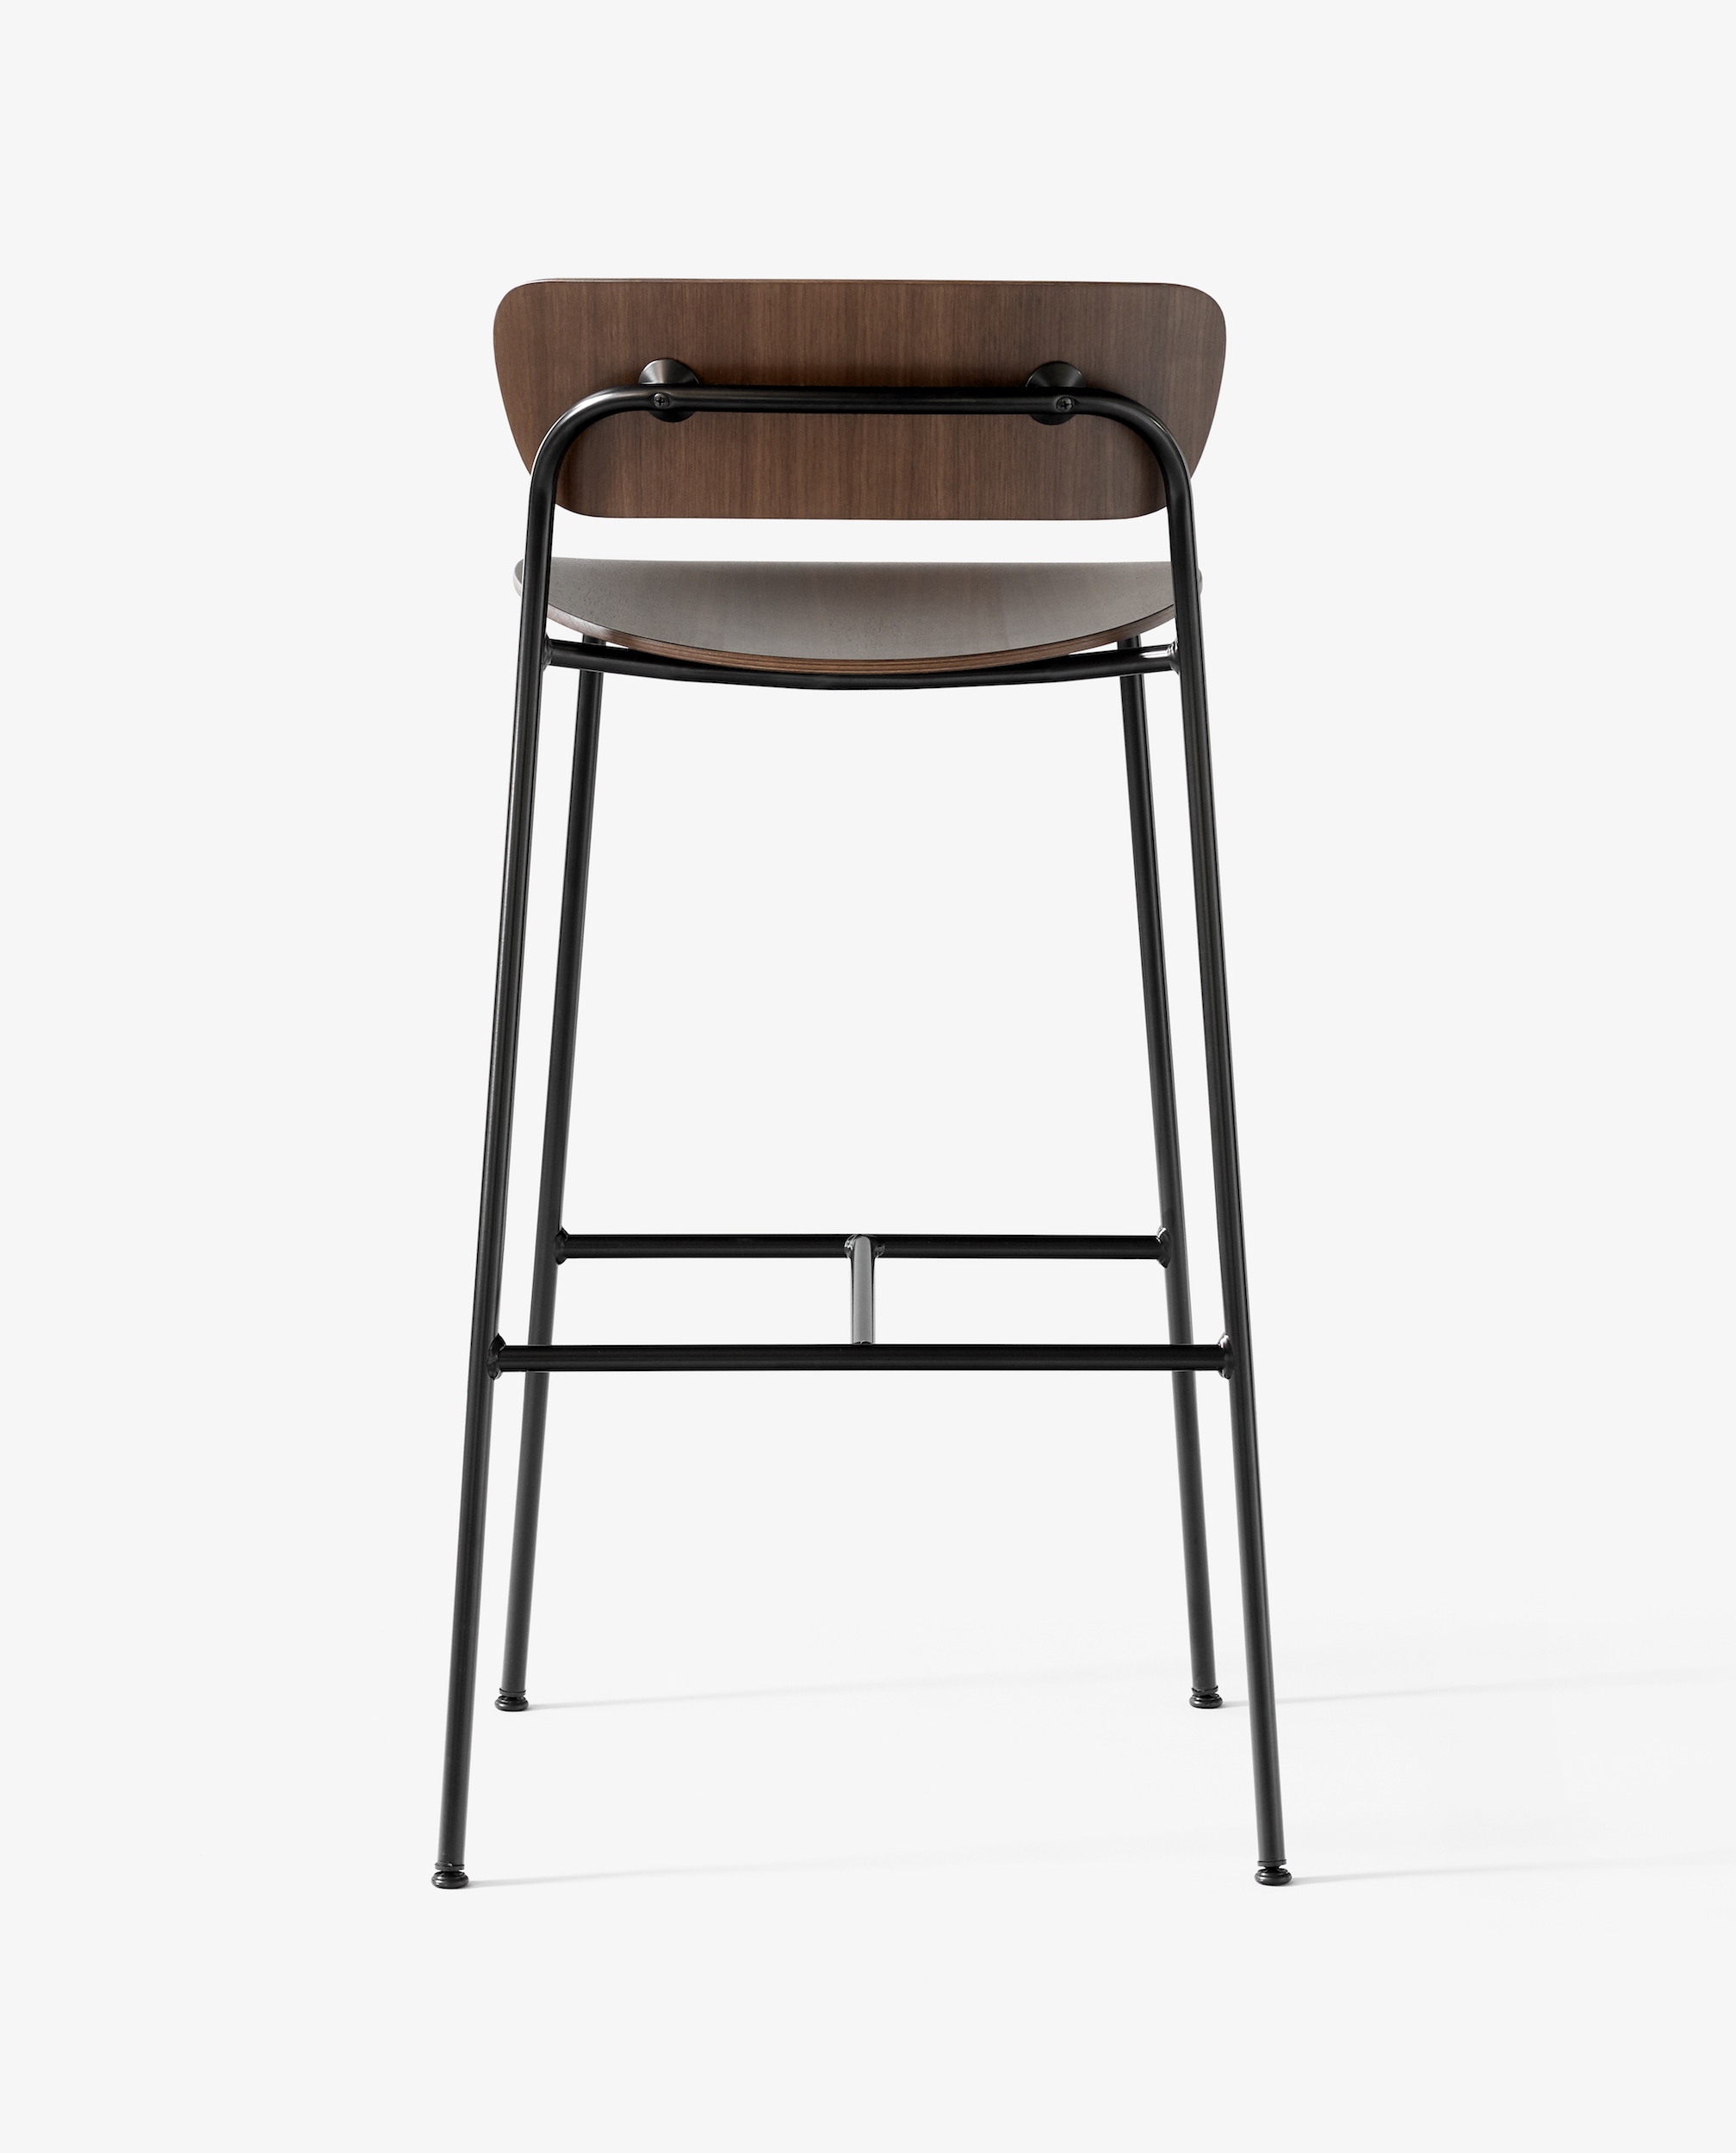 Amp Tradition Pavilion Bar Amp Counter Stools Av7 Amp Av9